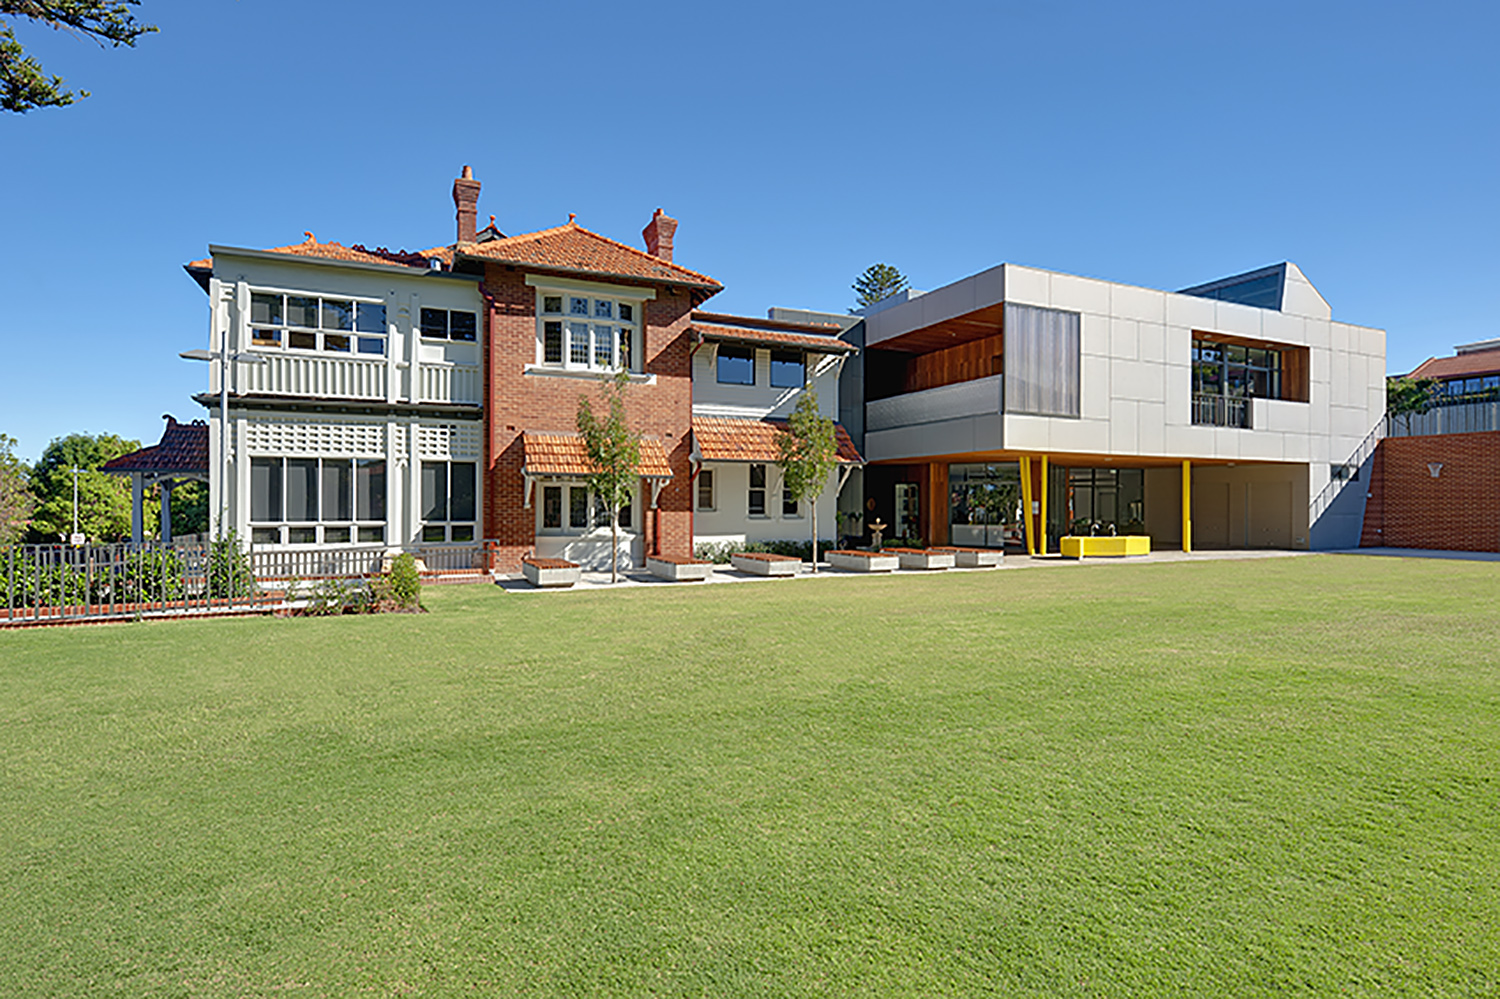 Perth-College-Early-Years-Mount-Lawley-Perth-Architecture7.jpg